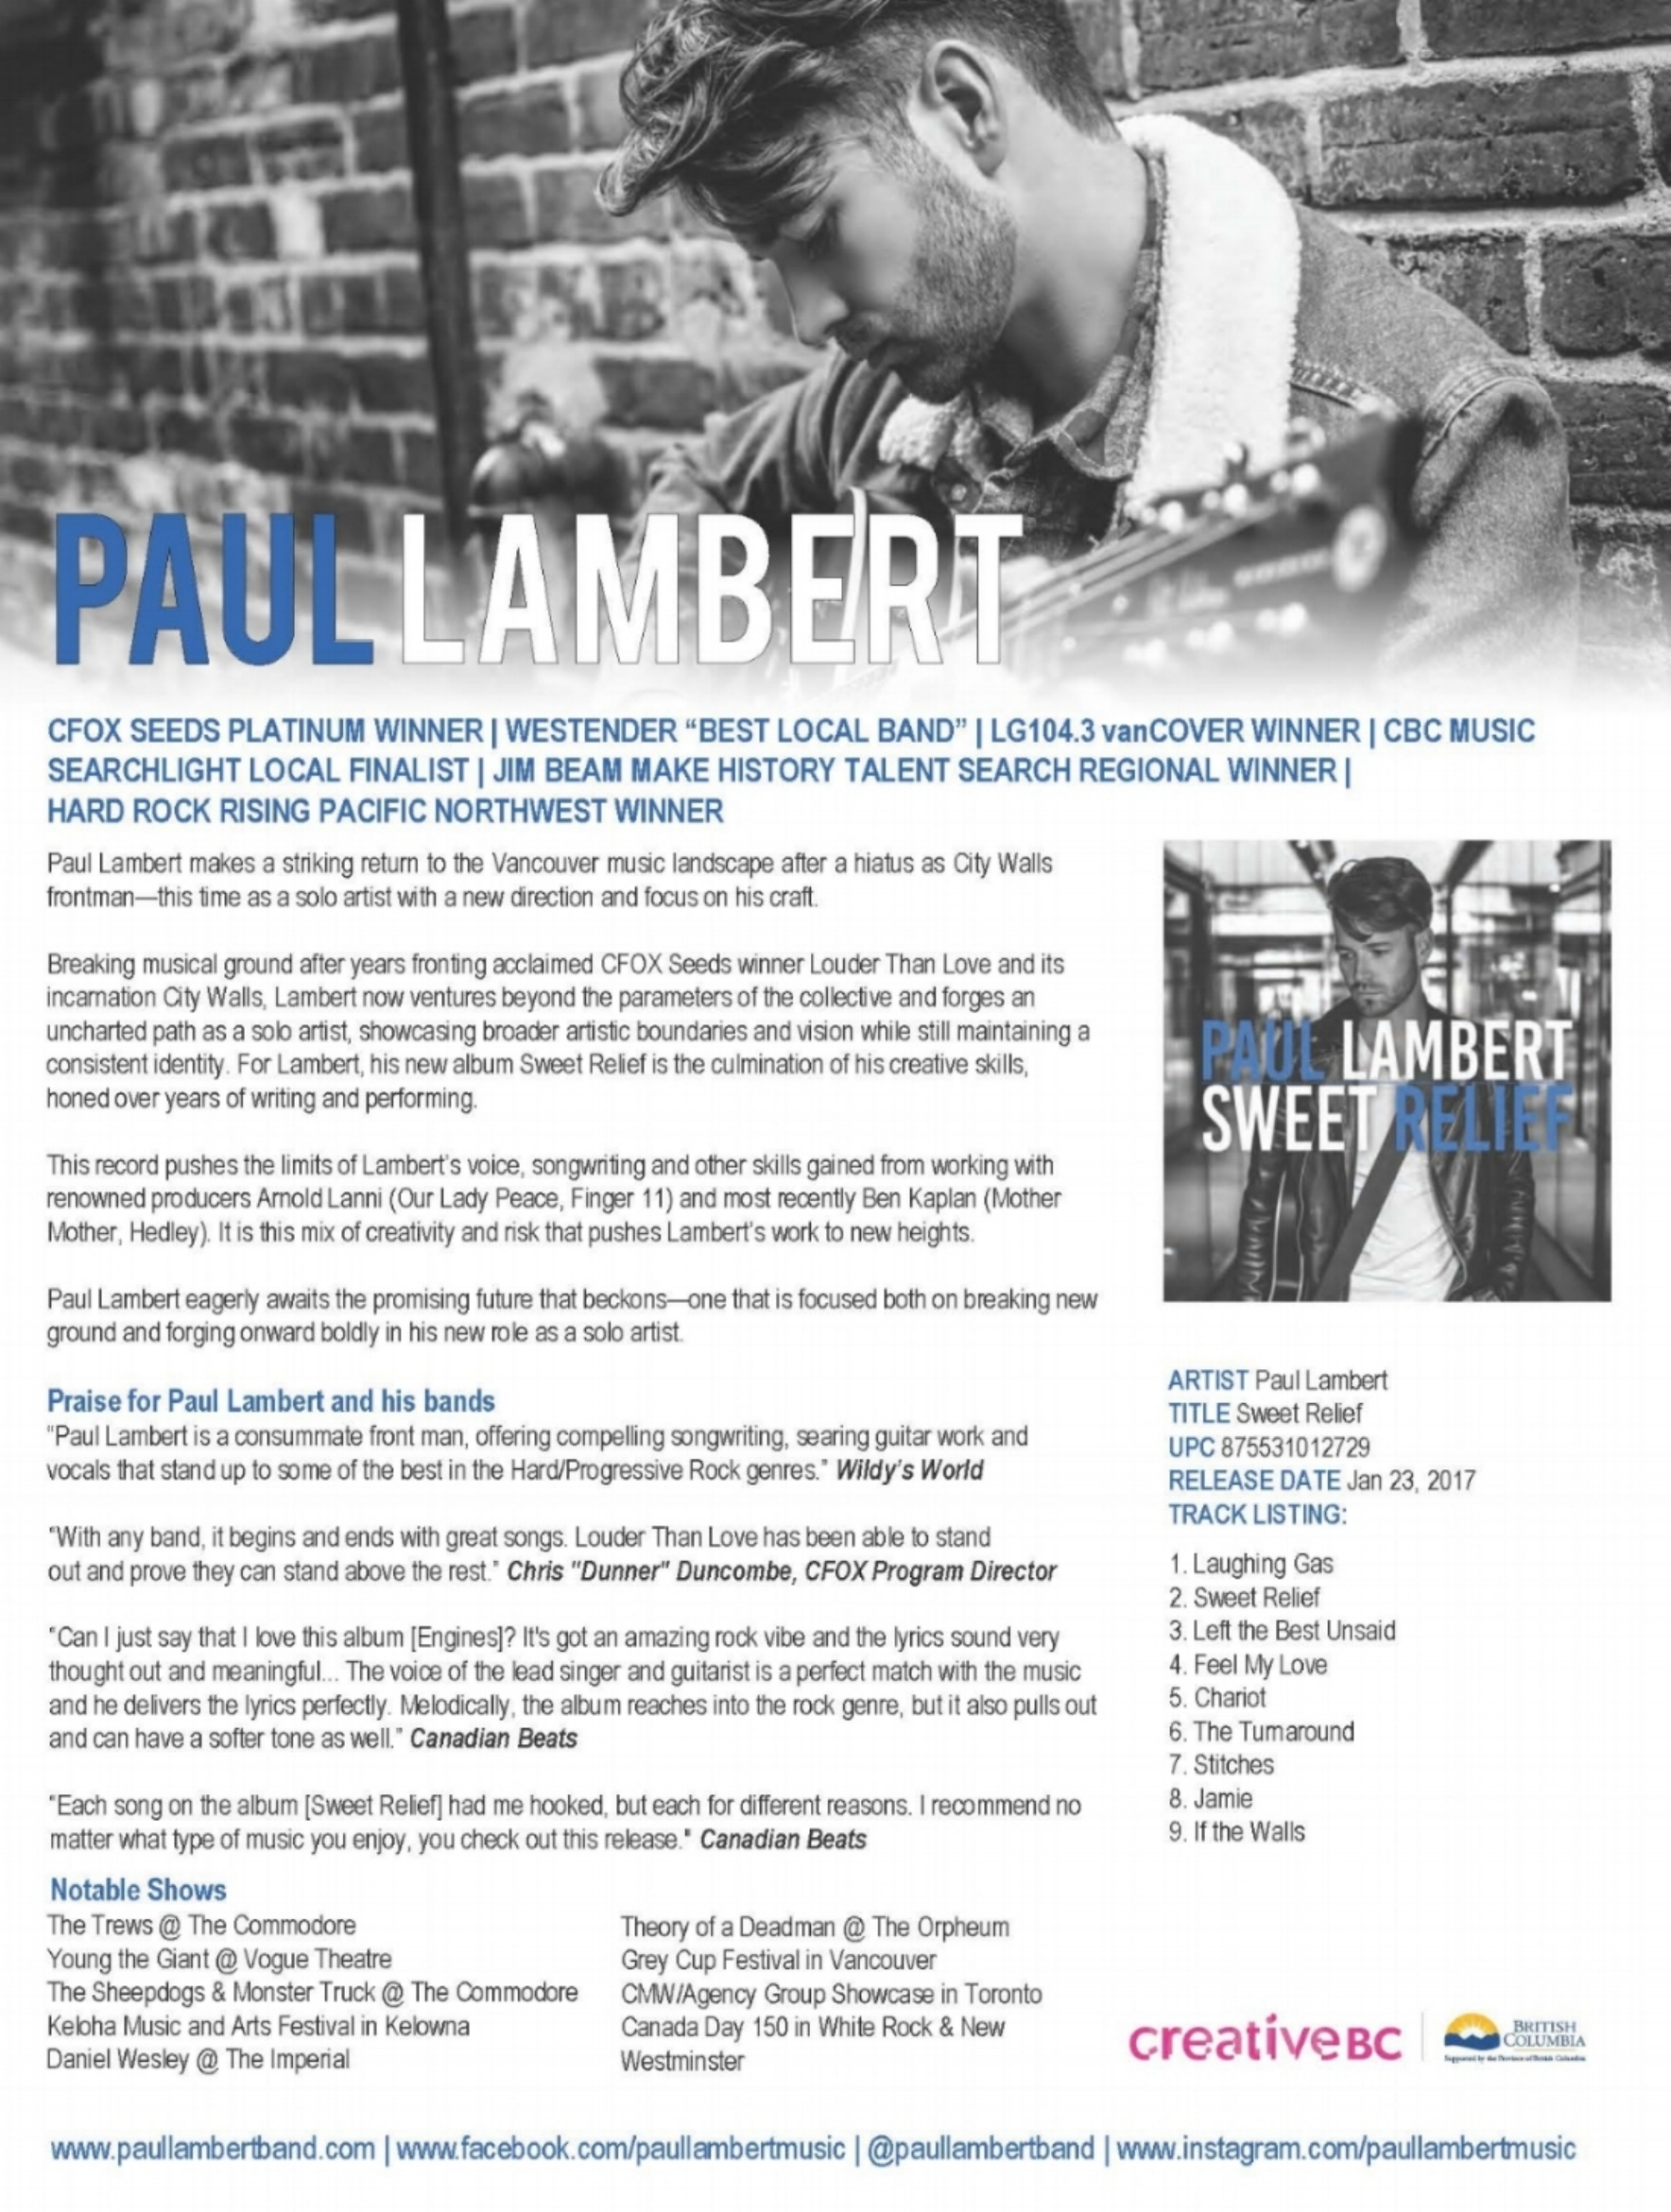 Paul Lambert One Sheet